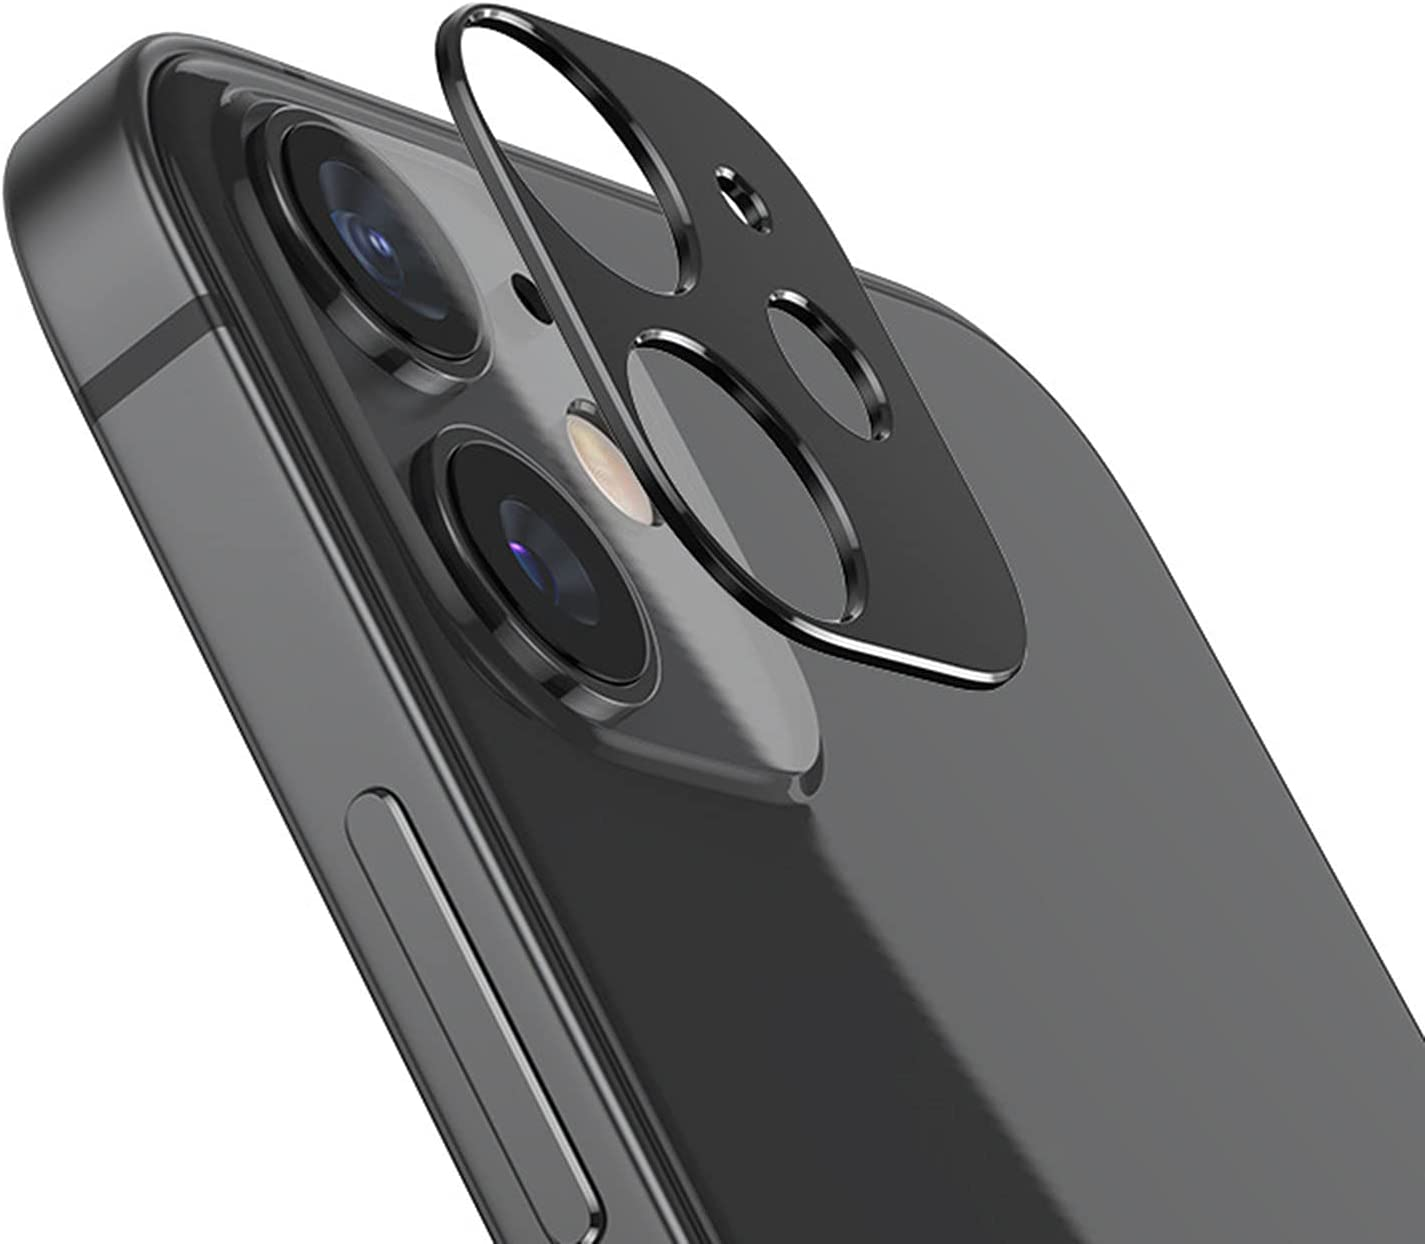 Camera Lens Screen Protector Compatible with iPhone 12 of Clear Tempered Glass Back Camera Protector,case Friendly,Ultra-Thin,Easy Installation